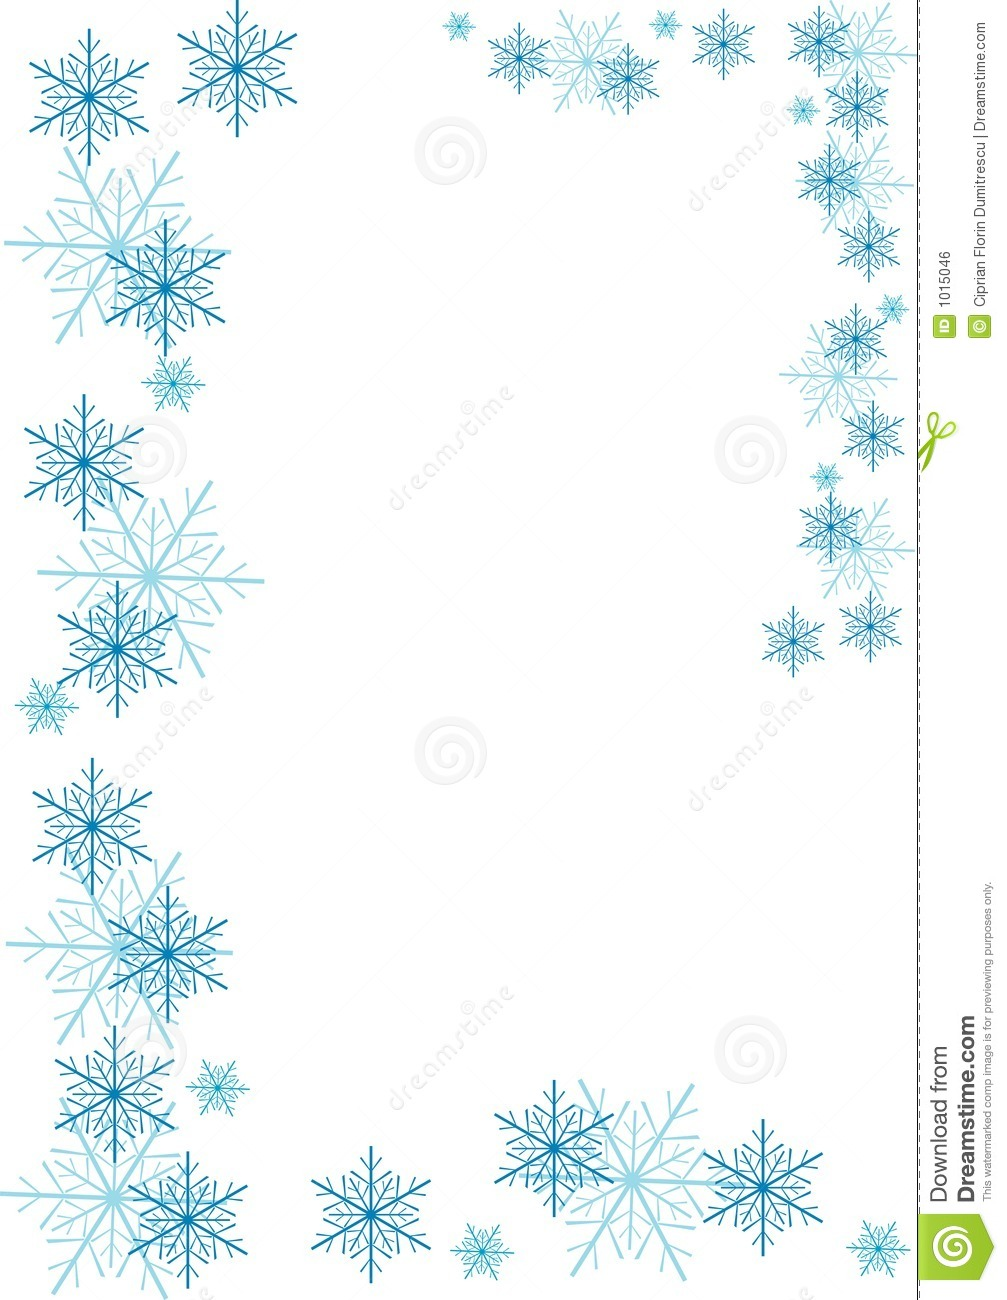 snowflakes border royalty free stock image image 1015046